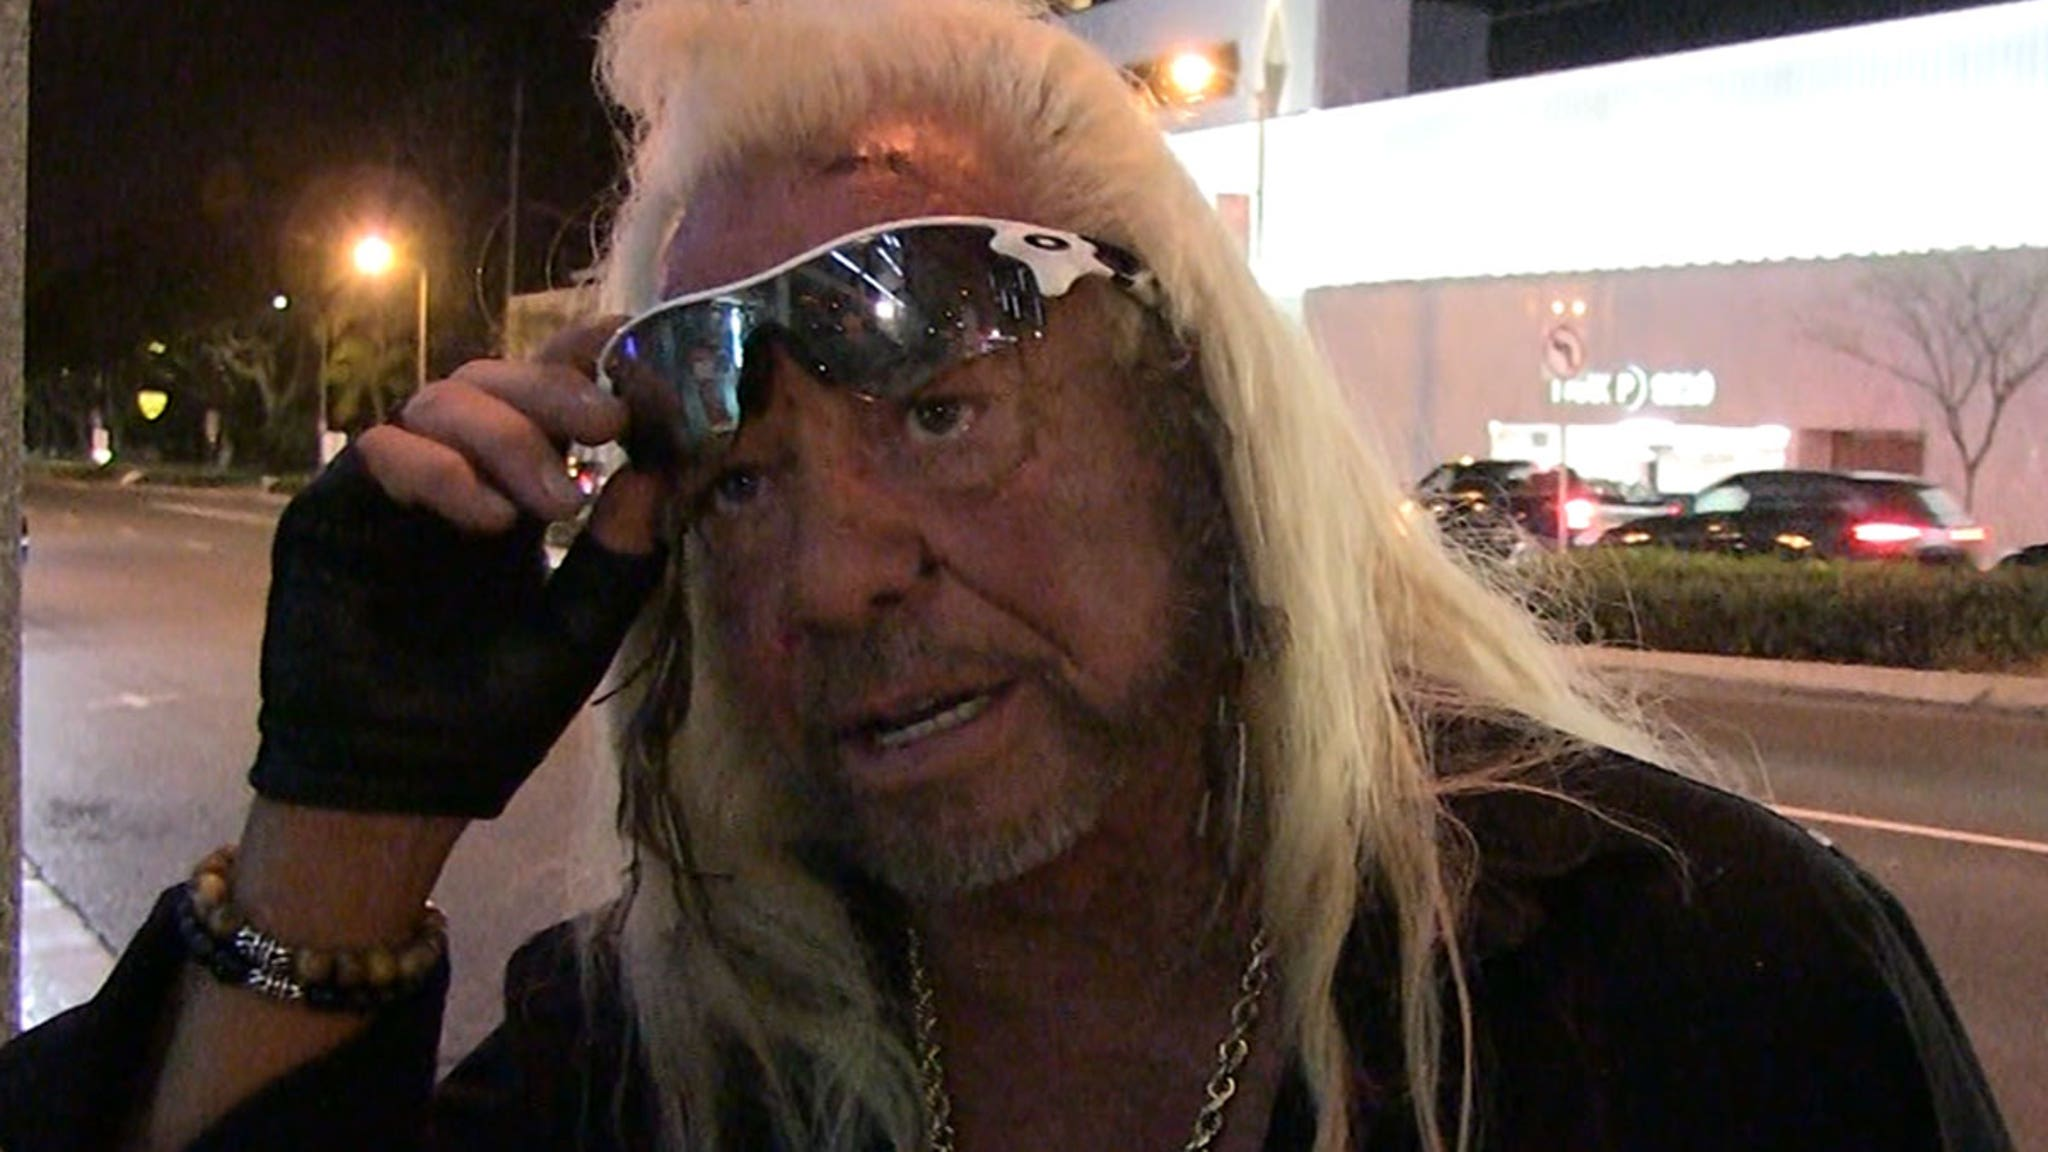 Dog the Bounty Hunter Says Family's Good, Just Crazy Like Normal